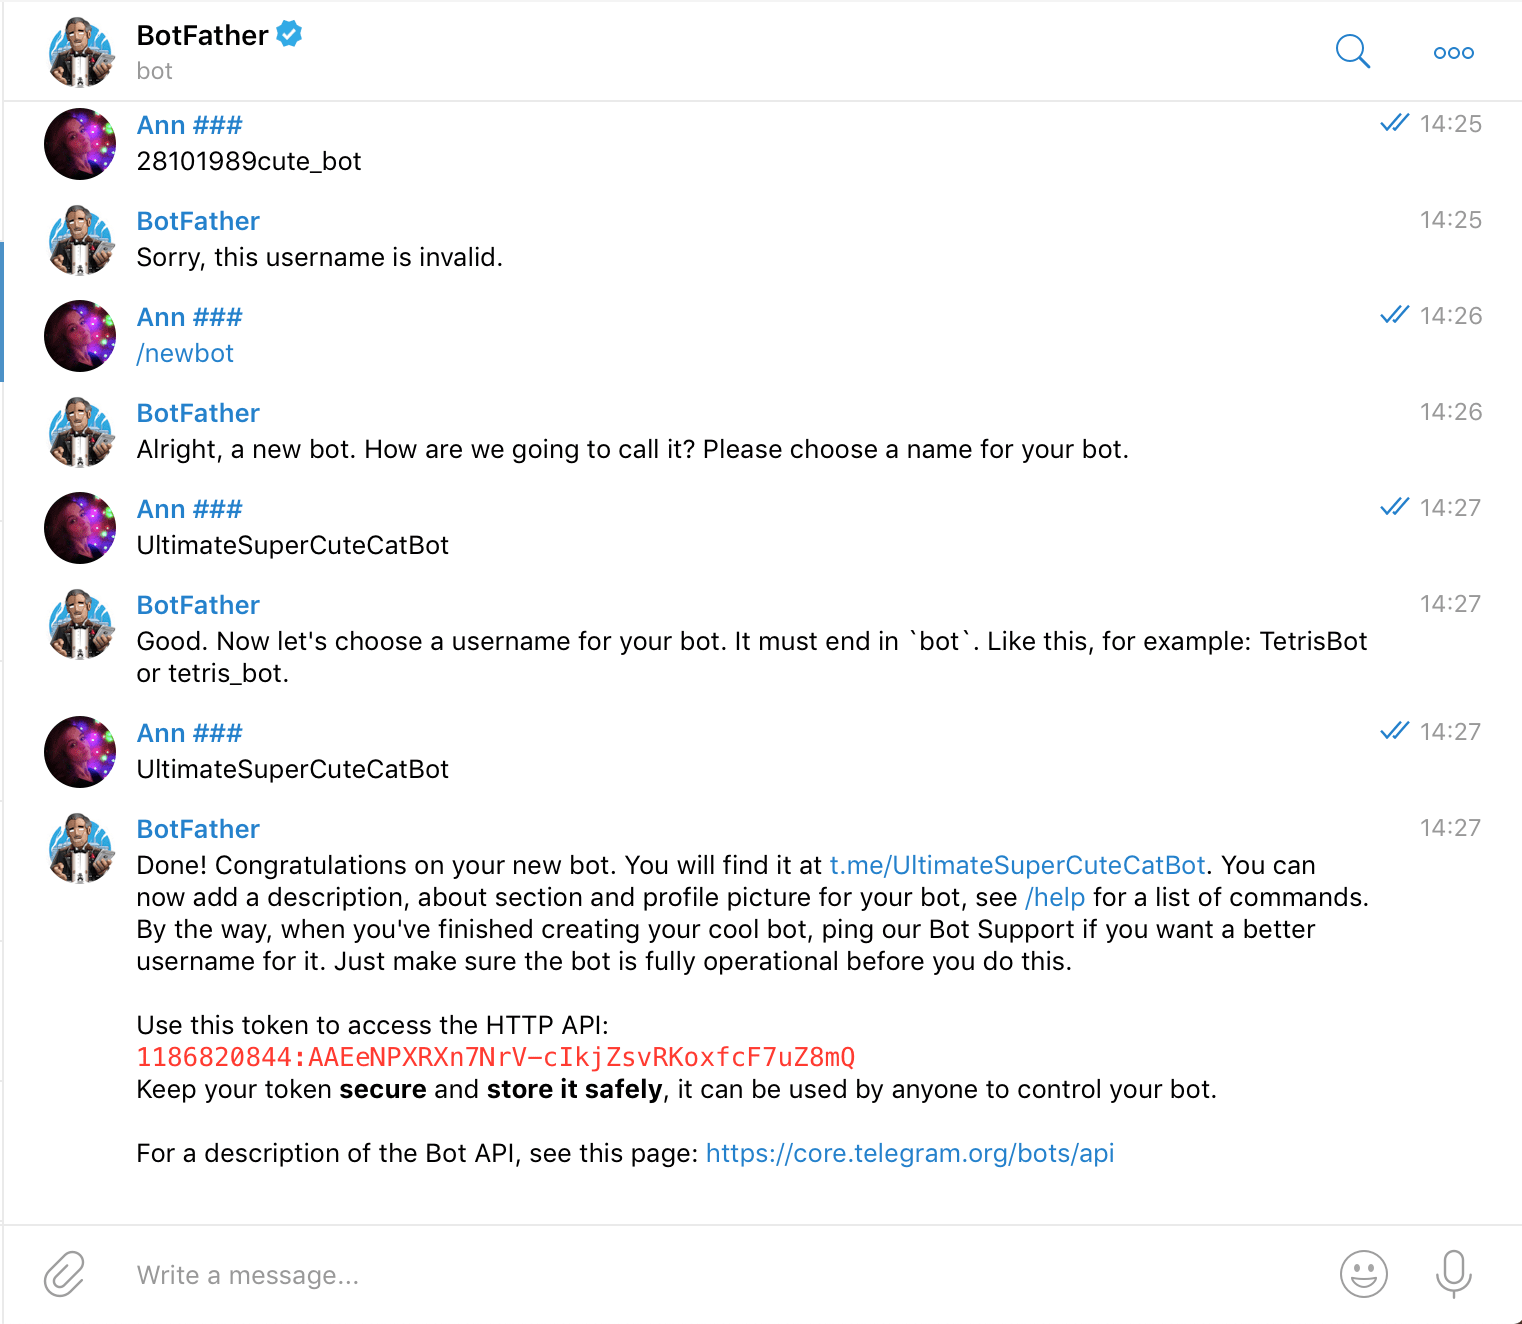 Create a new telegram bot